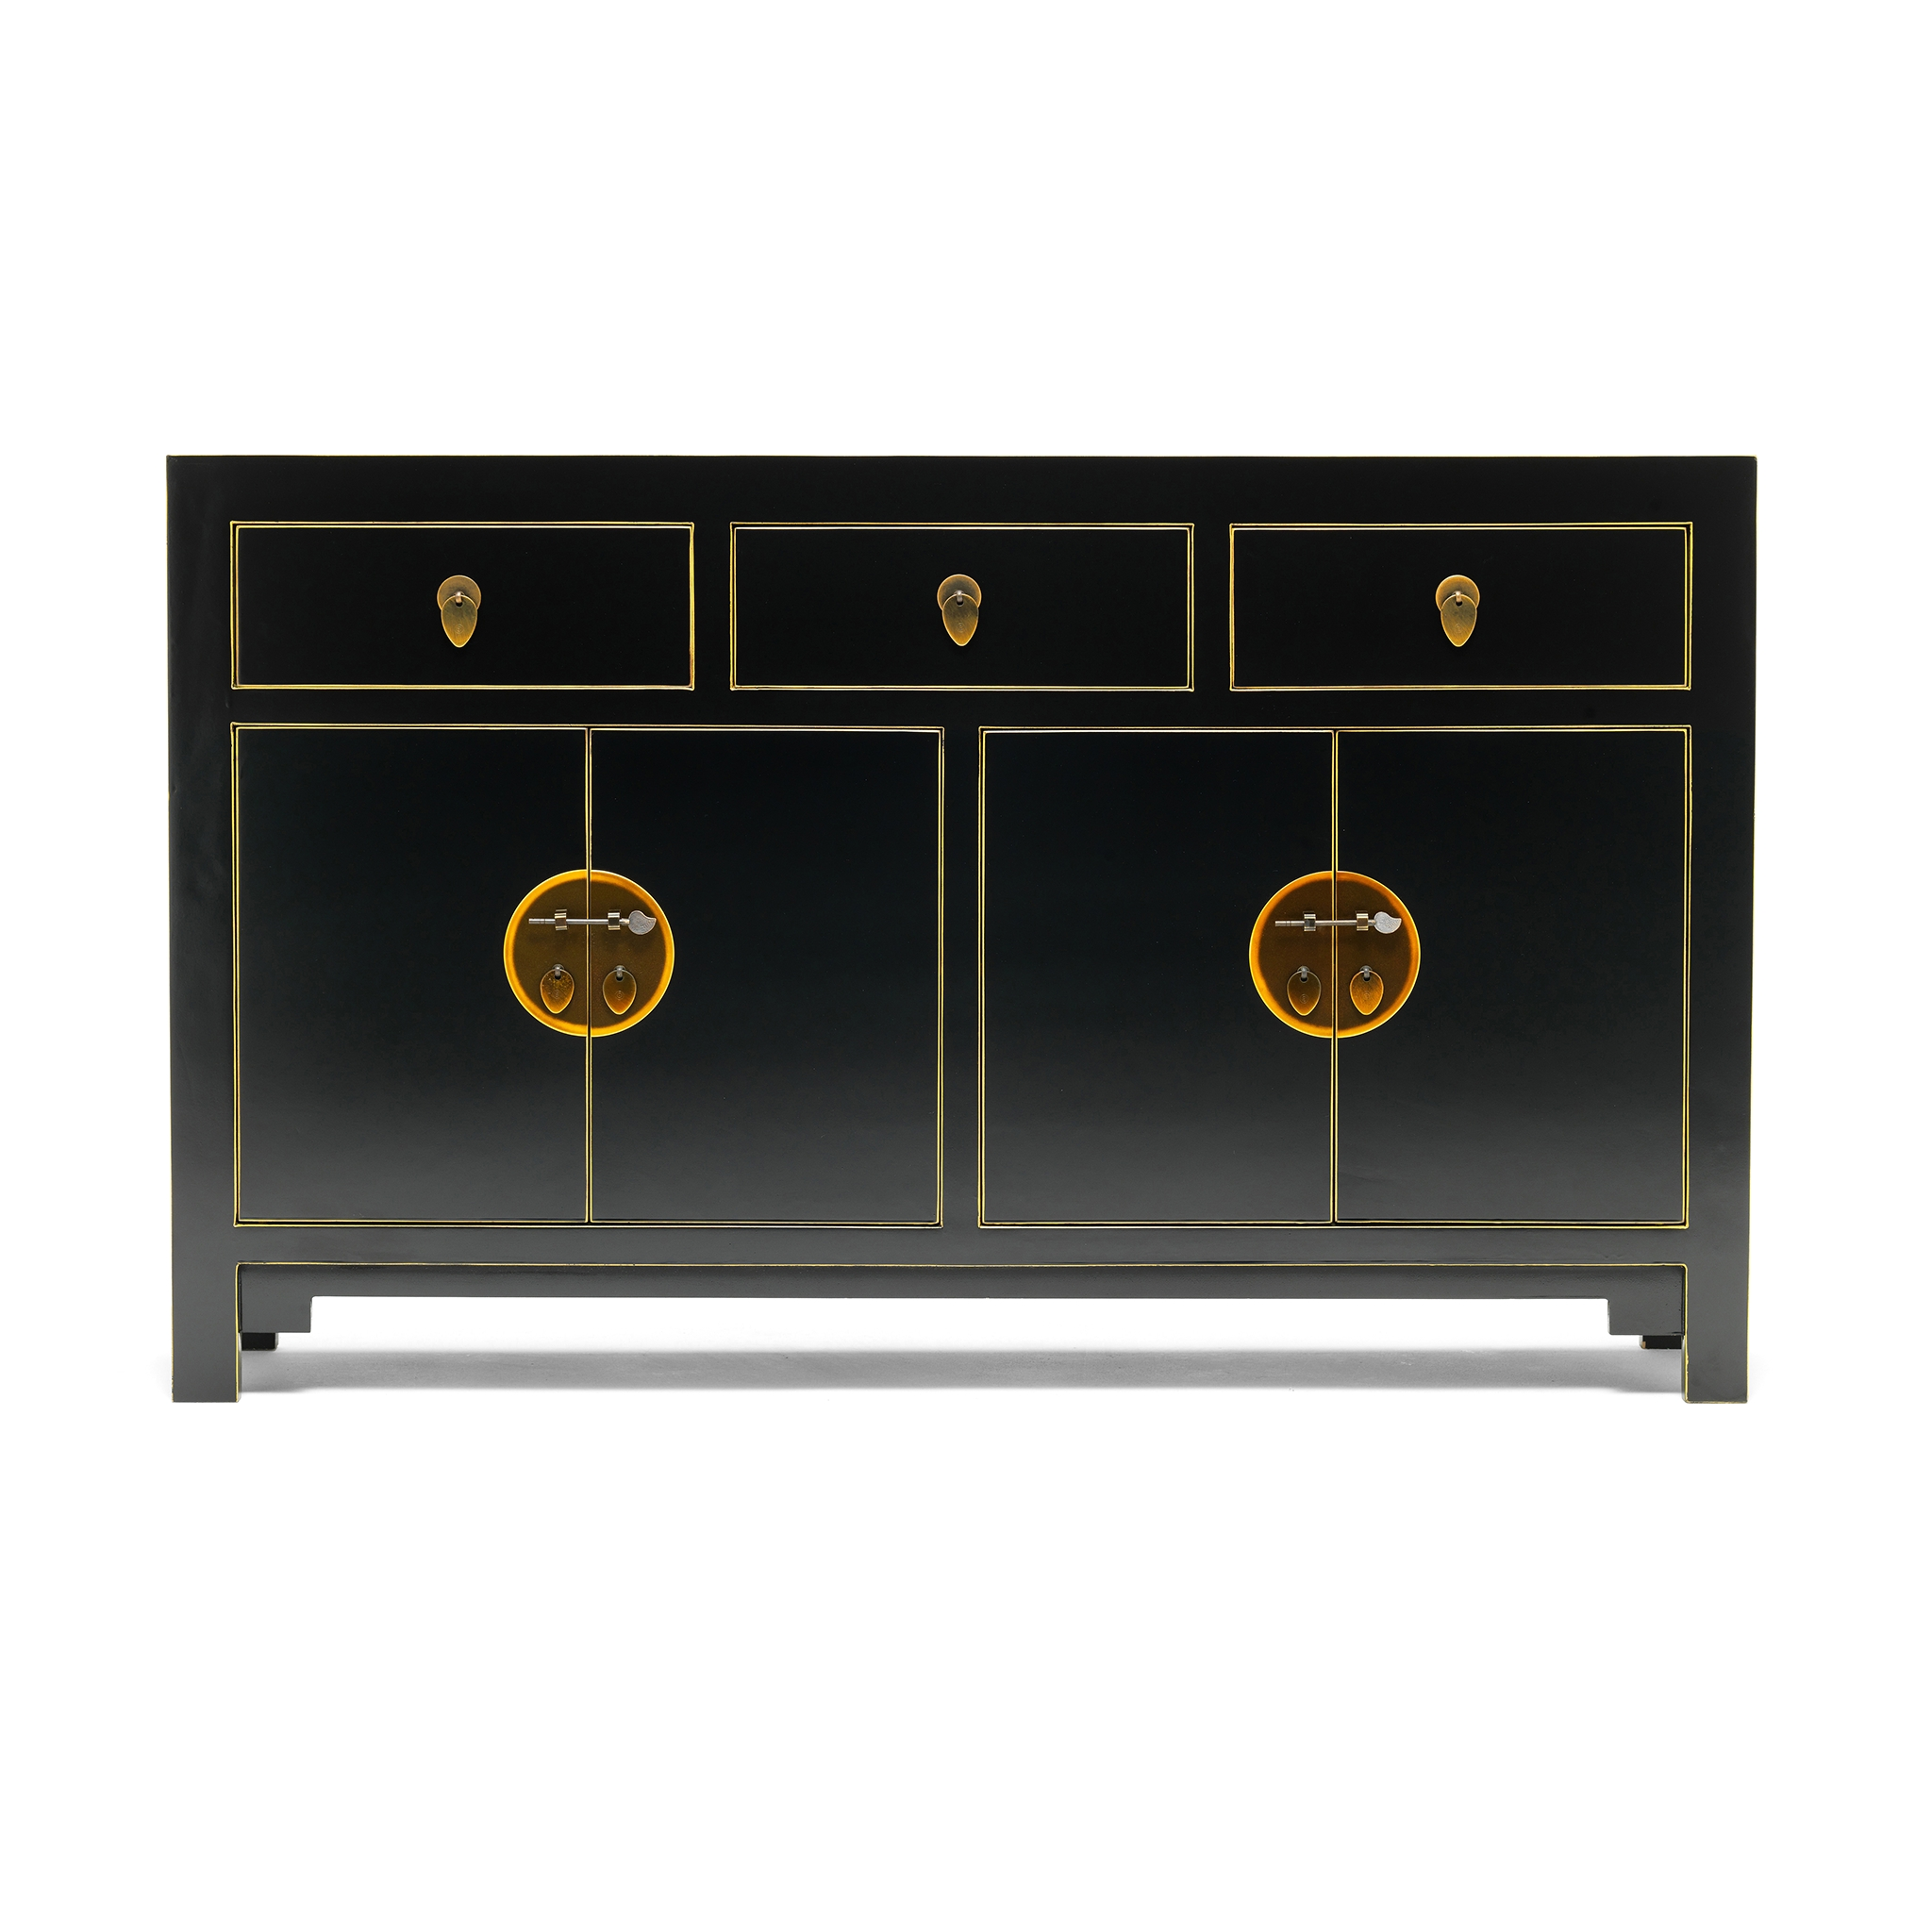 Qing Black And Gilt Sideboard, Large | Chinese Furniture, Oriental intended for Corrugated White Wash Sideboards (Image 20 of 30)